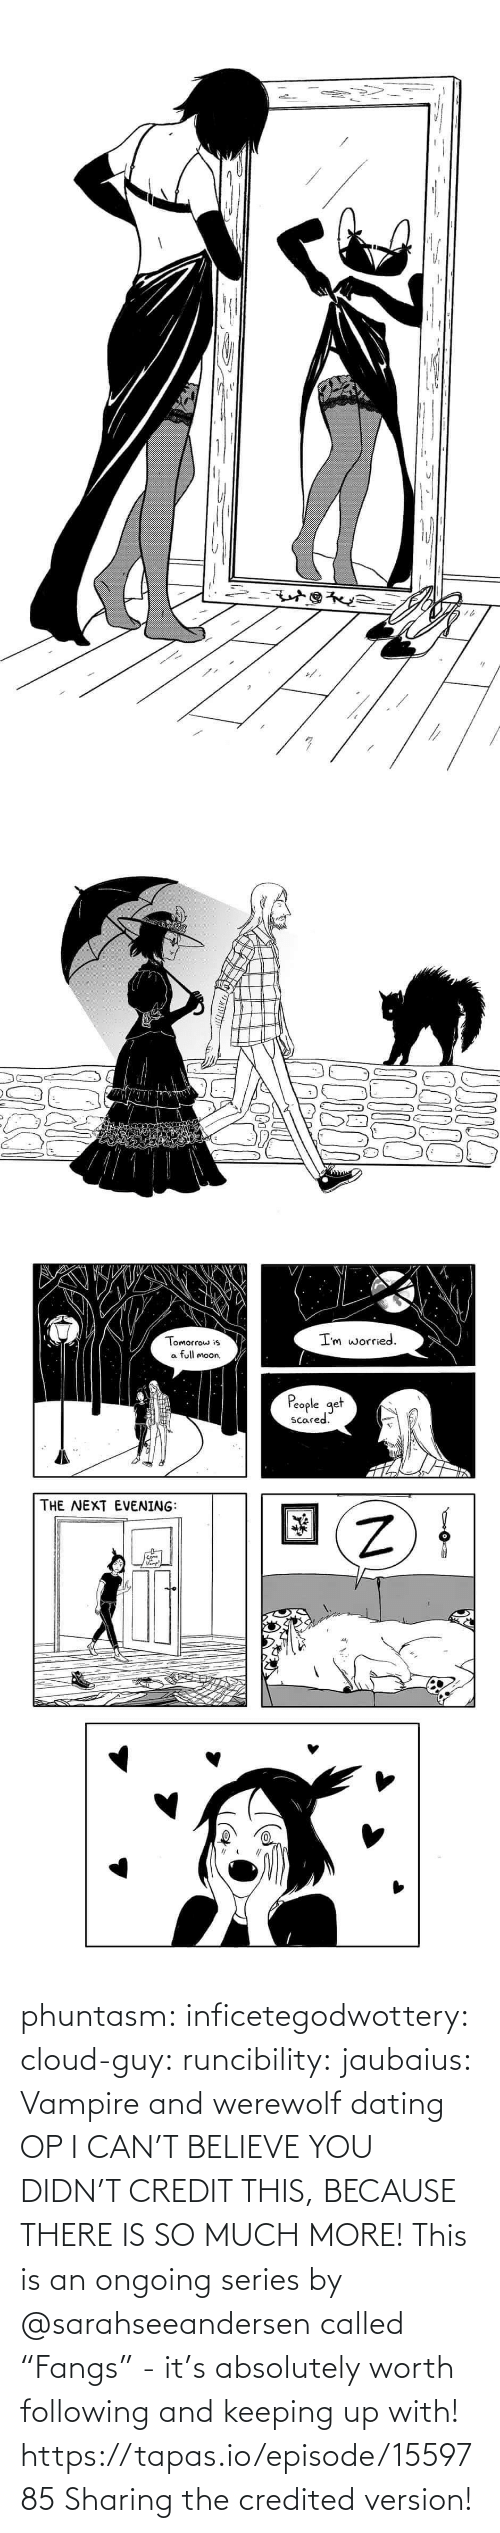 "worth: phuntasm: inficetegodwottery:  cloud-guy:   runcibility:  jaubaius:   Vampire and werewolf dating   OP I CAN'T BELIEVE YOU DIDN'T CREDIT THIS, BECAUSE THERE IS SO MUCH MORE! This is an ongoing series by @sarahseeandersen called ""Fangs"" - it's absolutely worth following and keeping up with! https://tapas.io/episode/1559785    Sharing the credited version!"